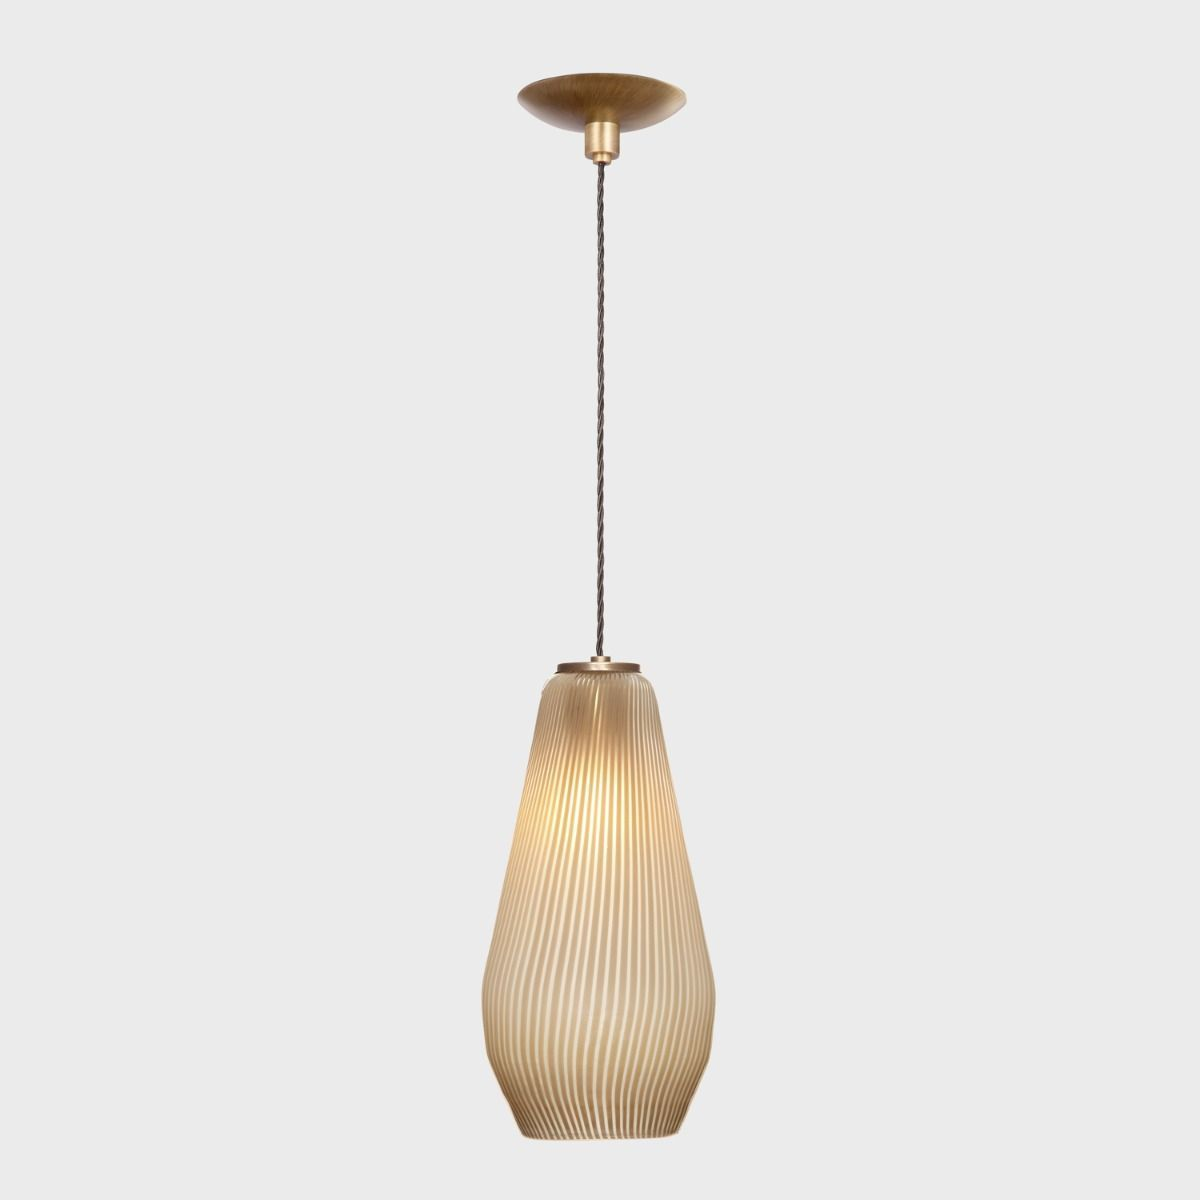 Fiordaliso Lampara De Techo In 2020 Glass Pendant Lamp Blown